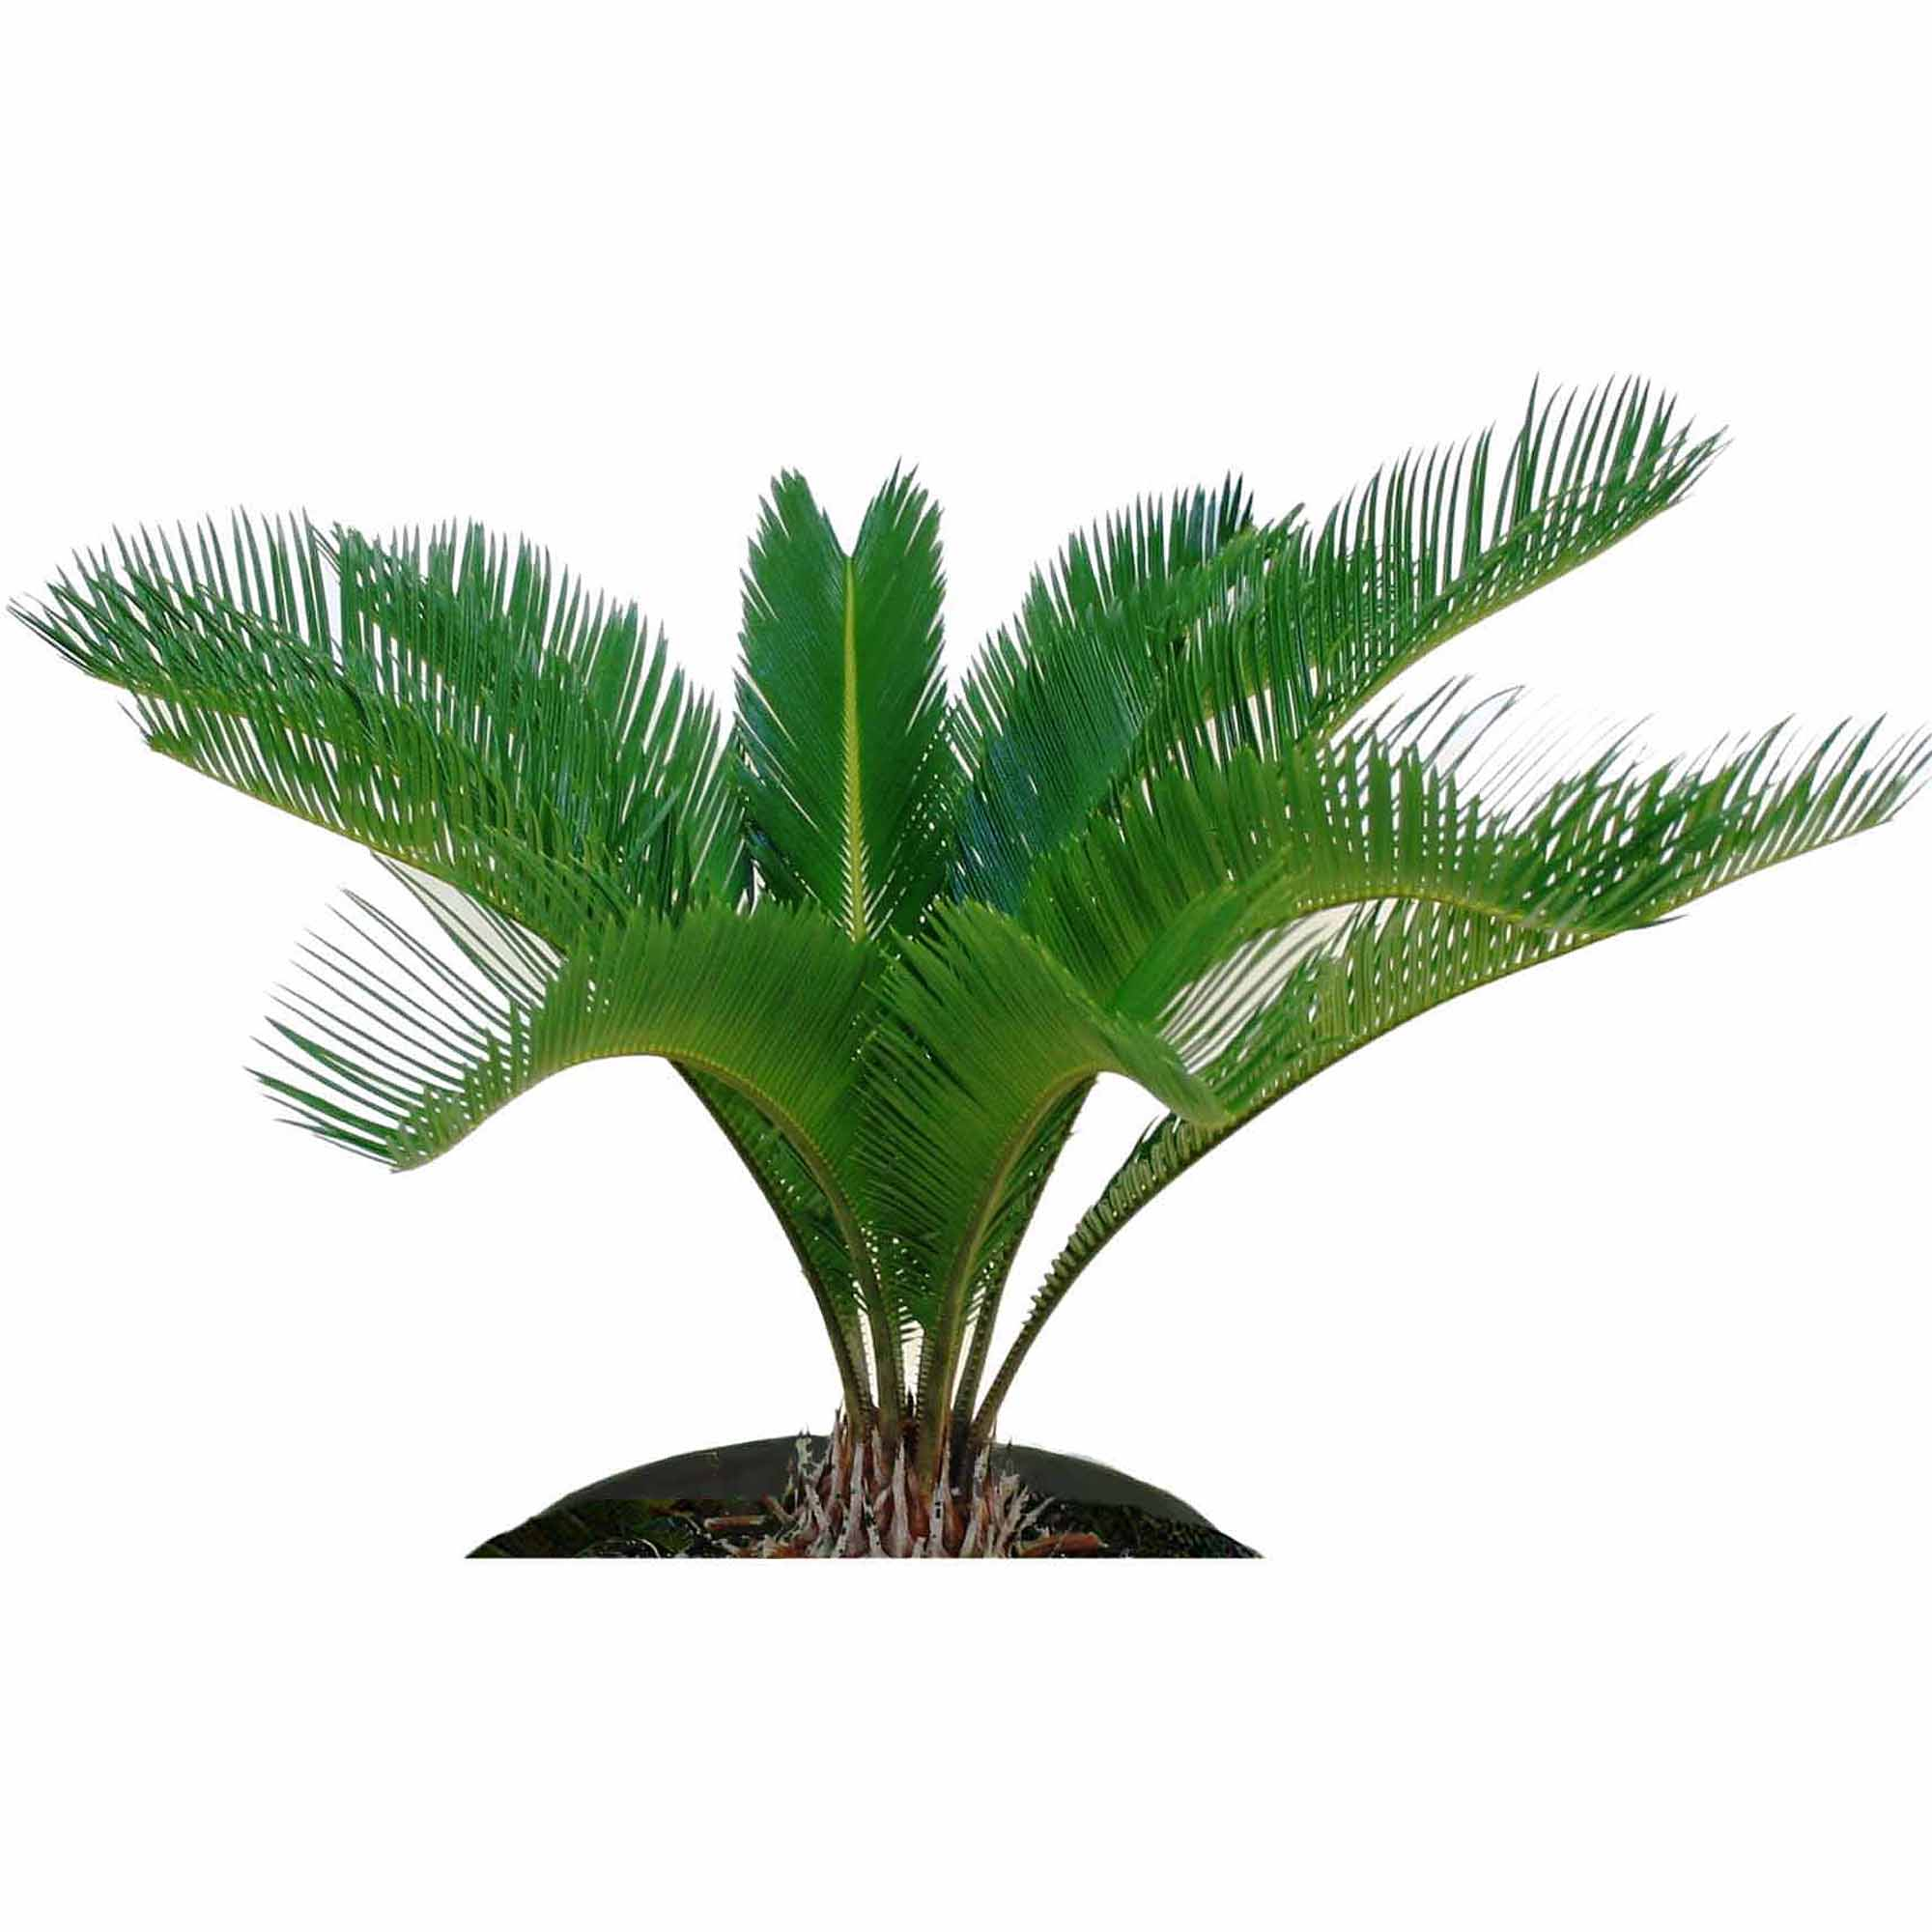 Outstanding areca palm cats pictures best inspiration for Areca palm safe for cats